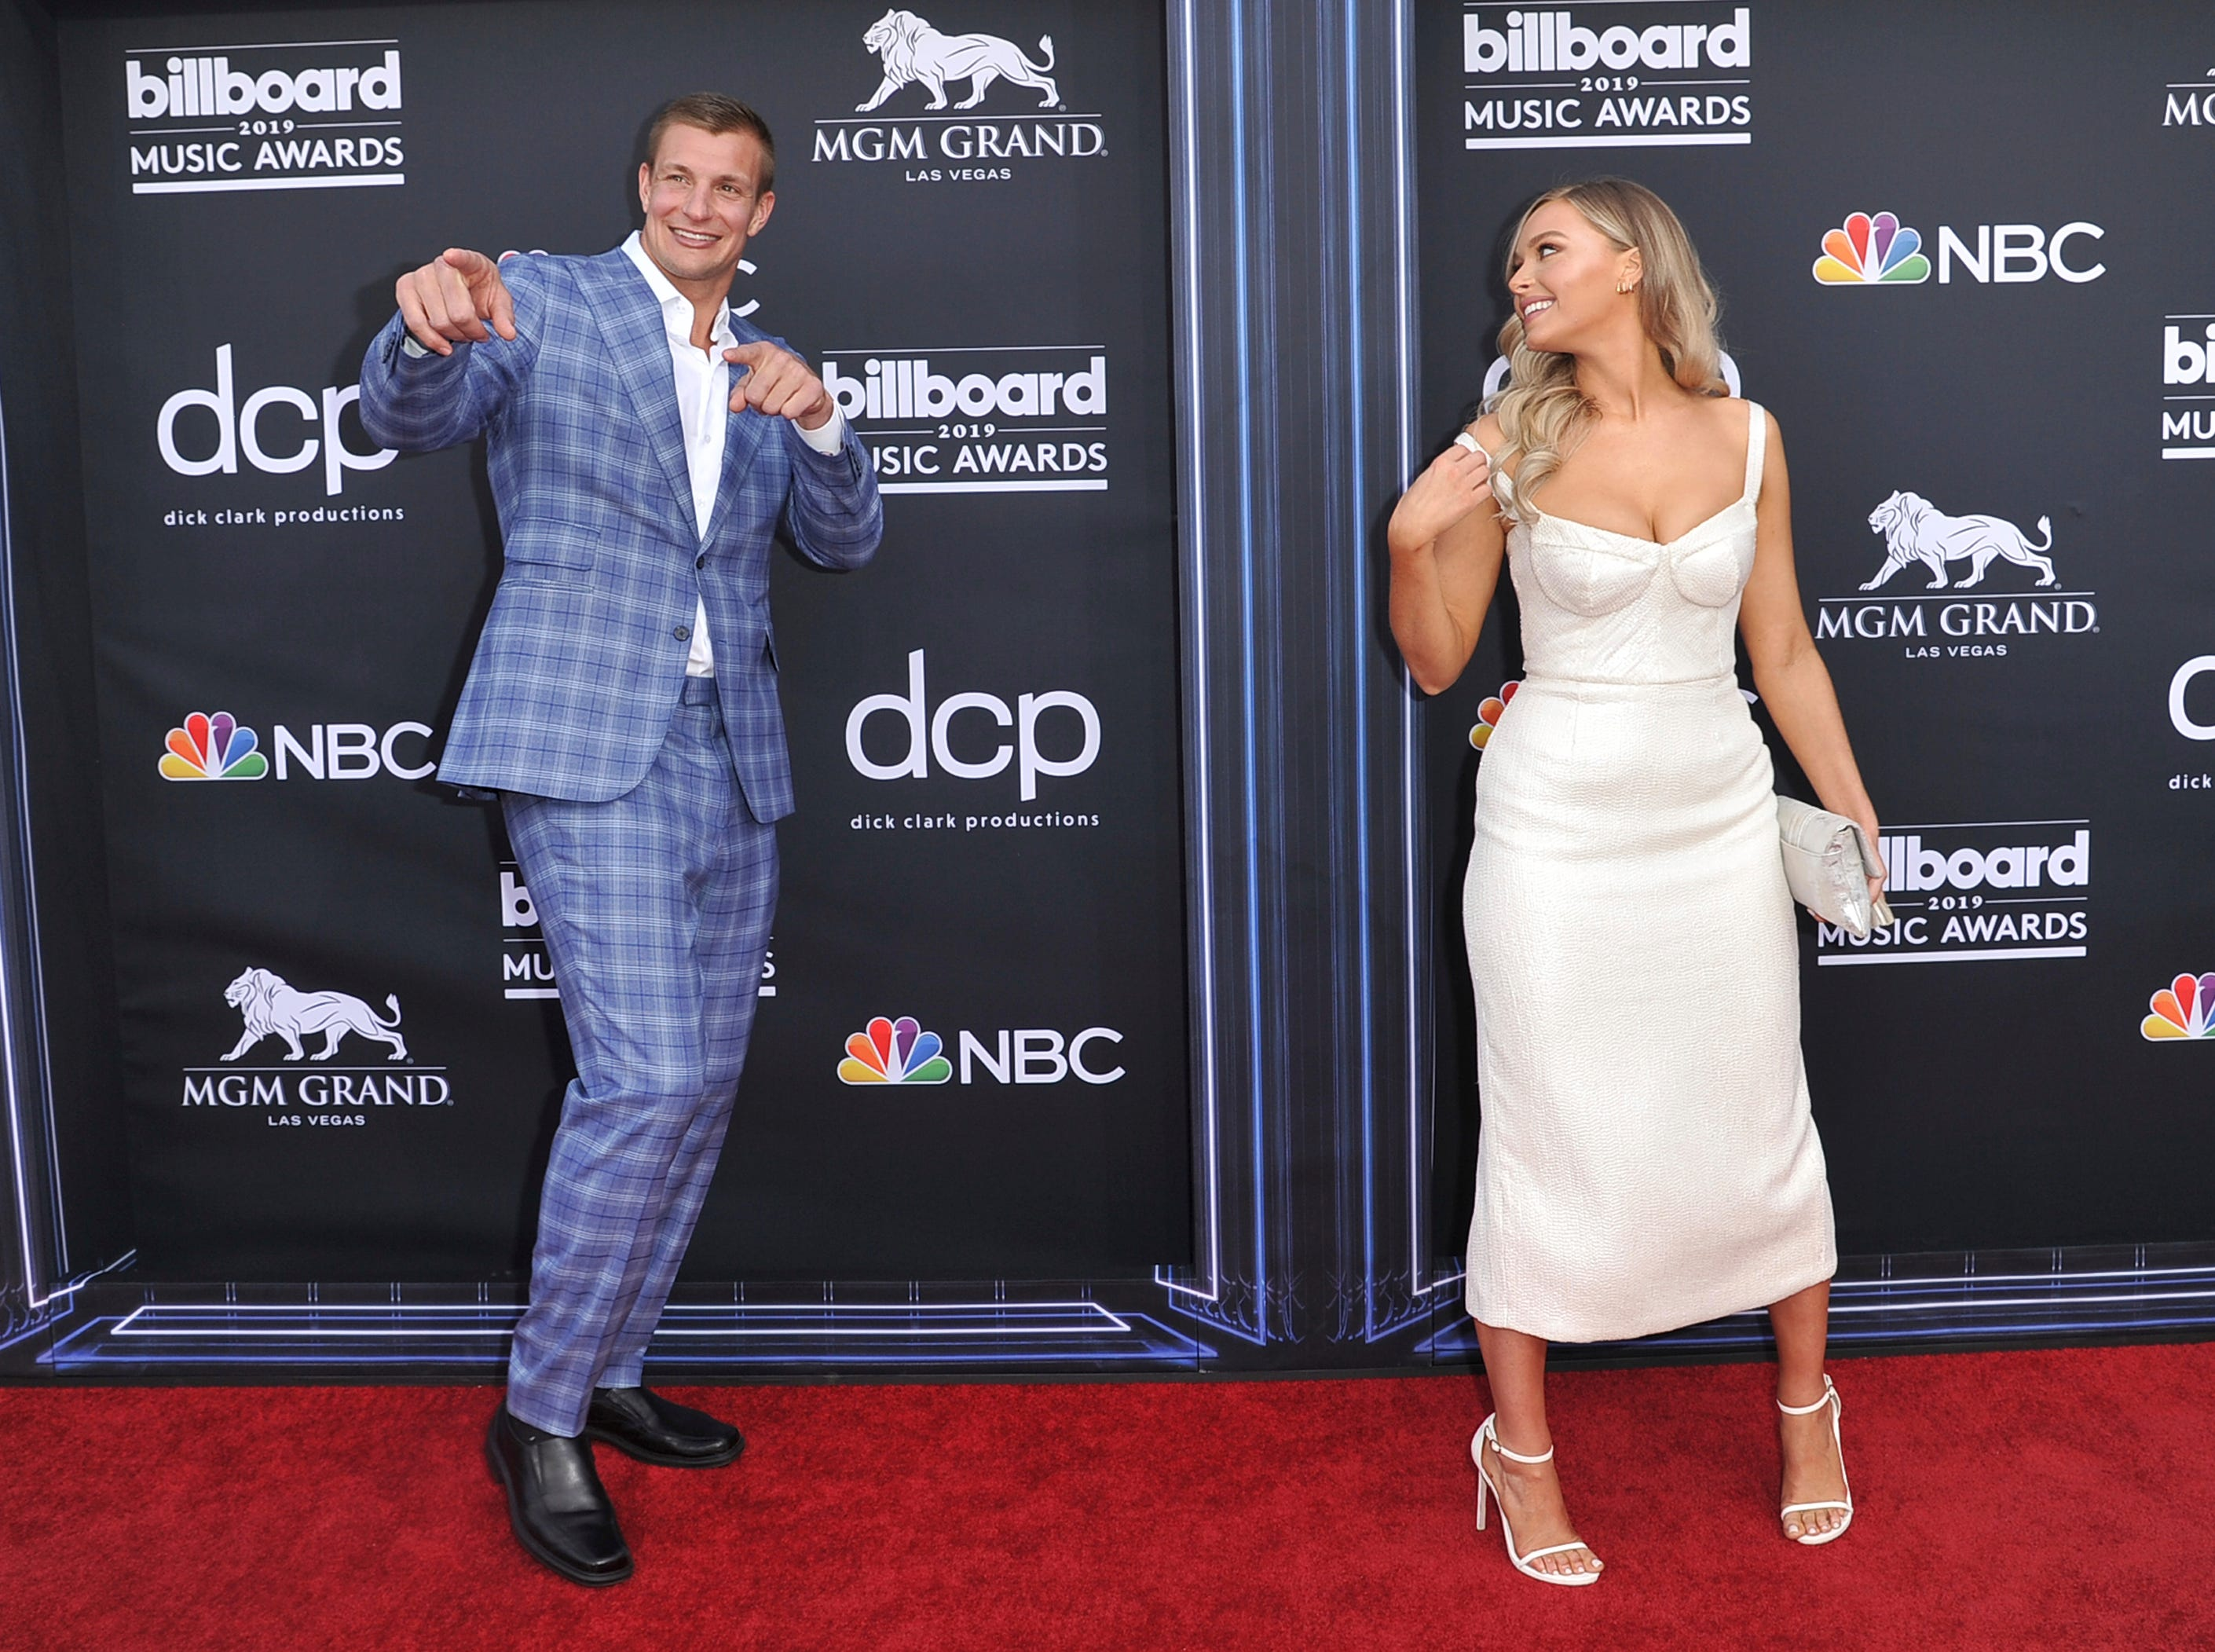 Rob Gronkowski, left, and Camille Kostek arrive at the Billboard Music Awards on Wednesday, May 1, 2019, at the MGM Grand Garden Arena in Las Vegas.